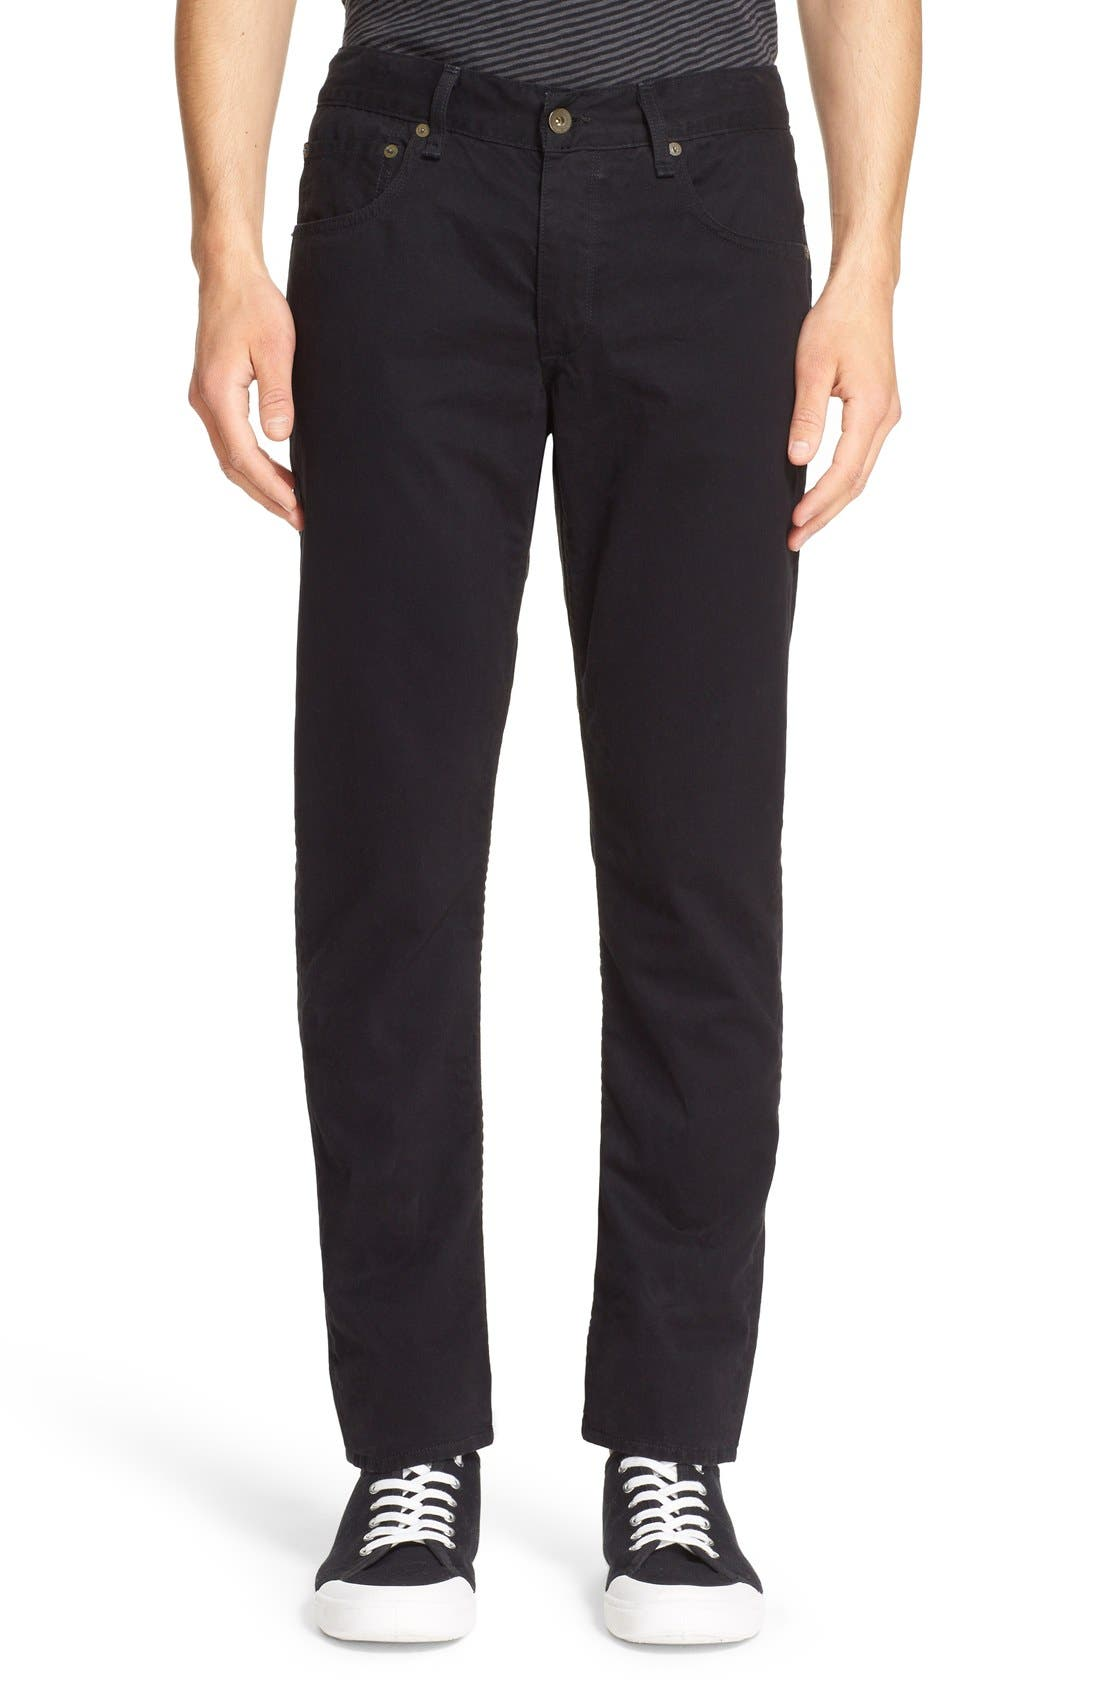 Main Image - rag & bone 'Fit 2' Cotton Twill Pants (Nordstrom Exclusive)